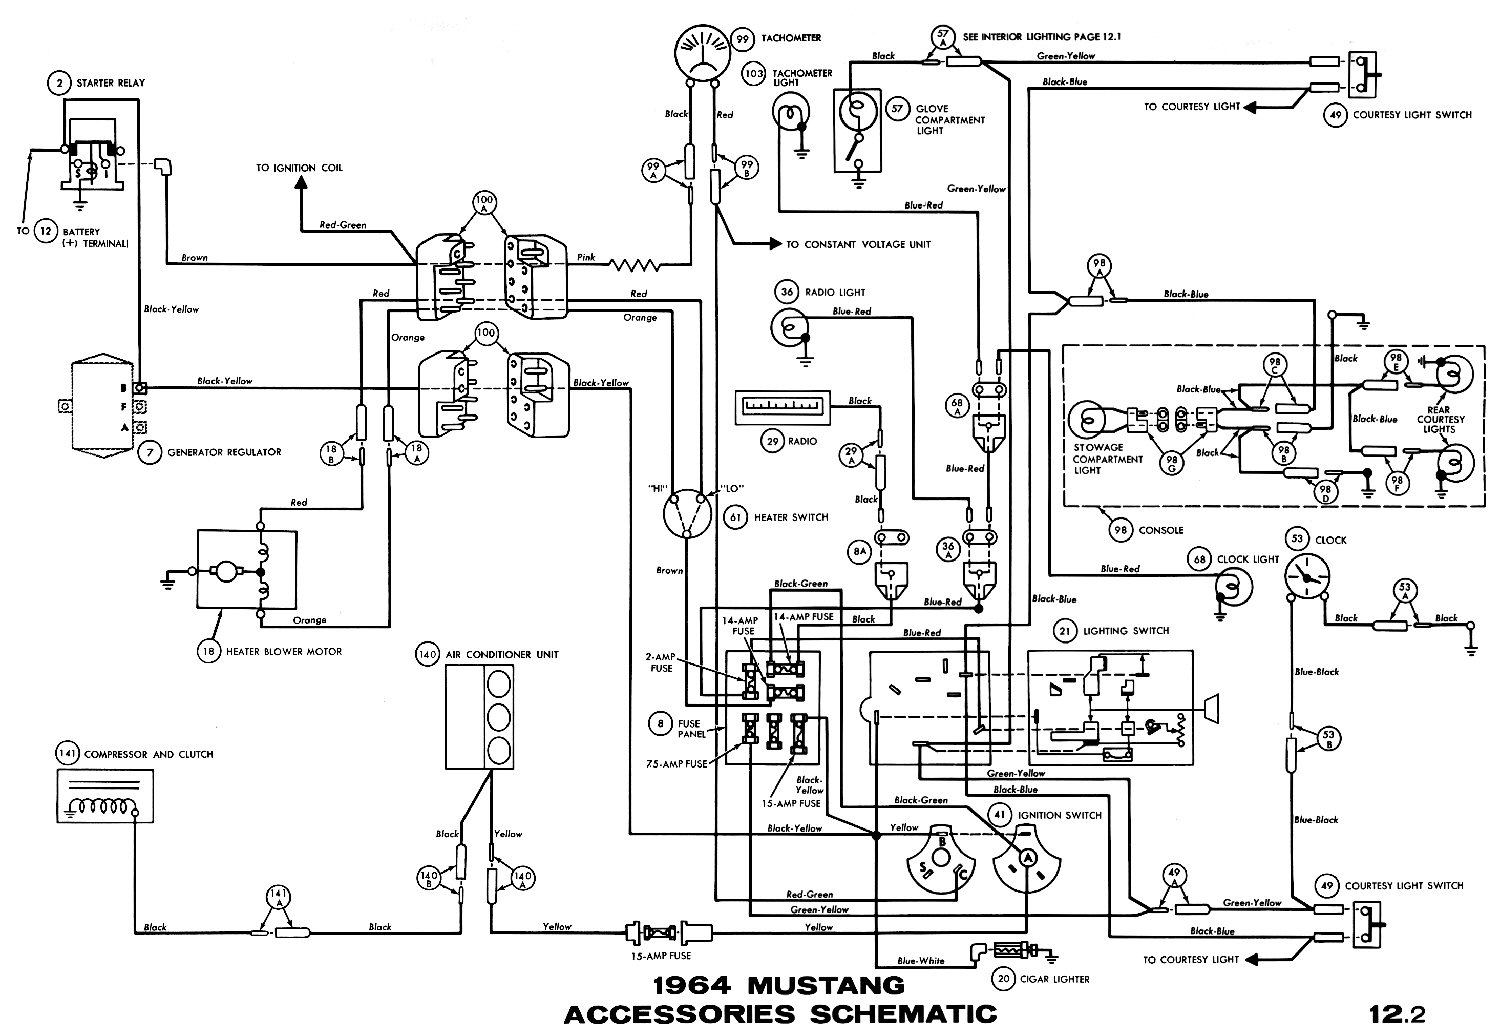 1964m 1964 mustang wiring diagrams average joe restoration 2015 mustang speaker wiring diagram at mifinder.co